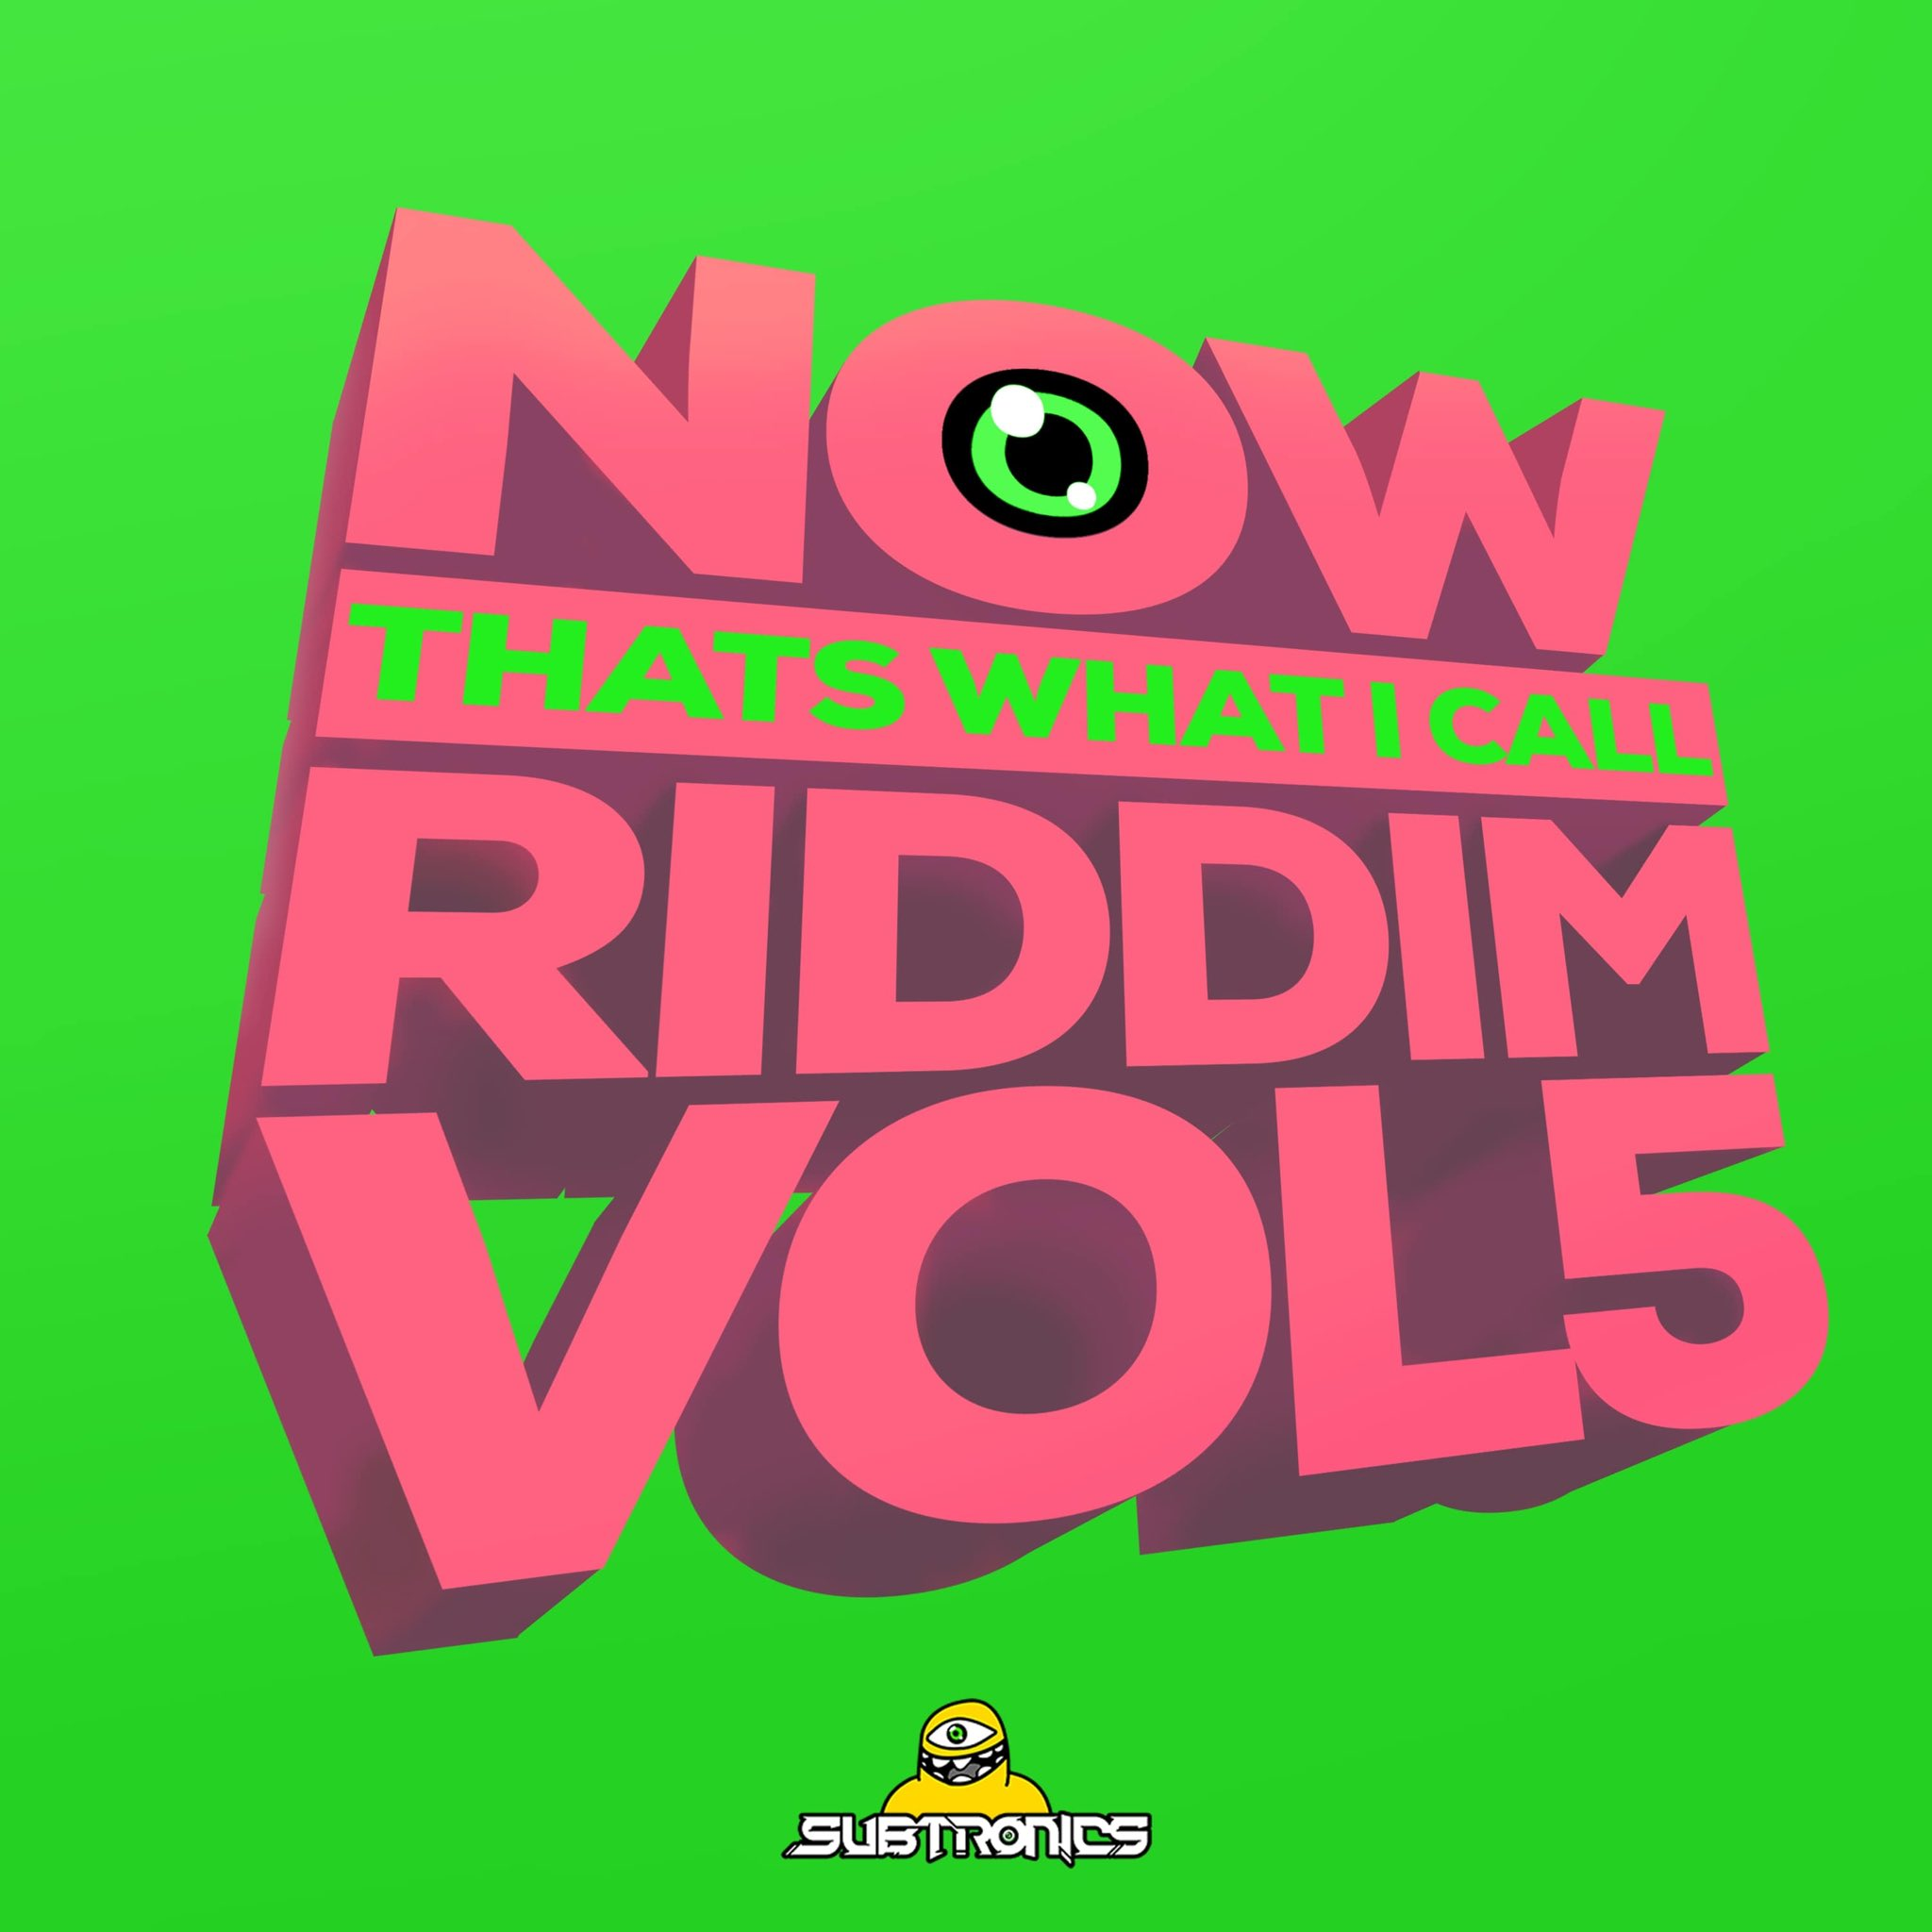 NOW THATS WHAT I CALL RIDDIM VOLUME 5